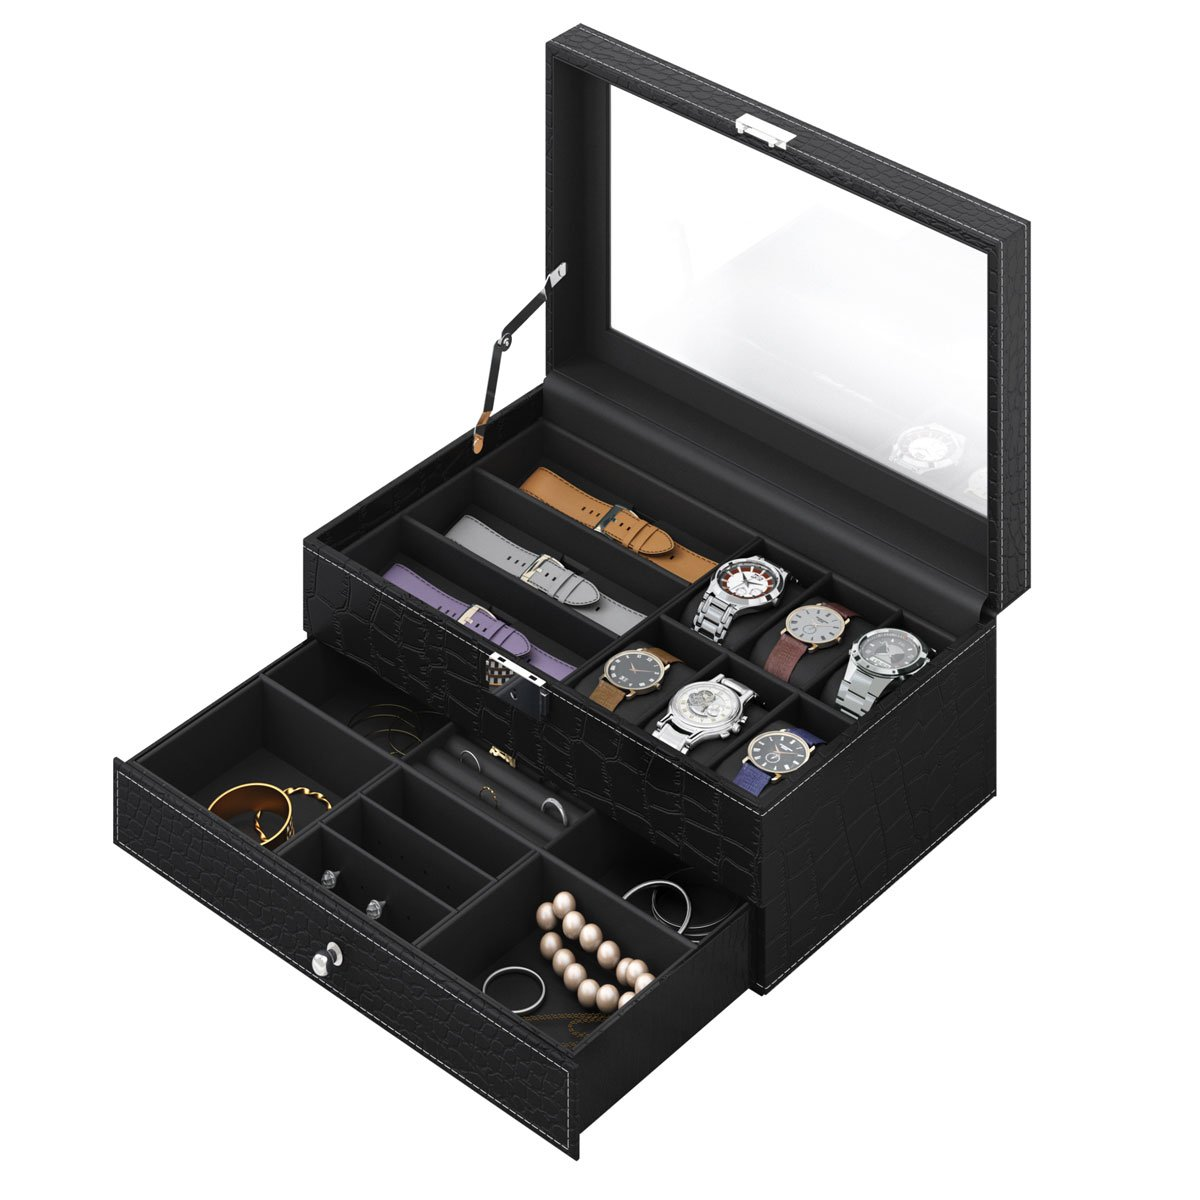 CRITIRON Watch Case Display Organizer for Men, Jewelry Storage Box for Women, PU Leather Watch Cabinet with Drawer and Glass Top, 2 Layers(Black)